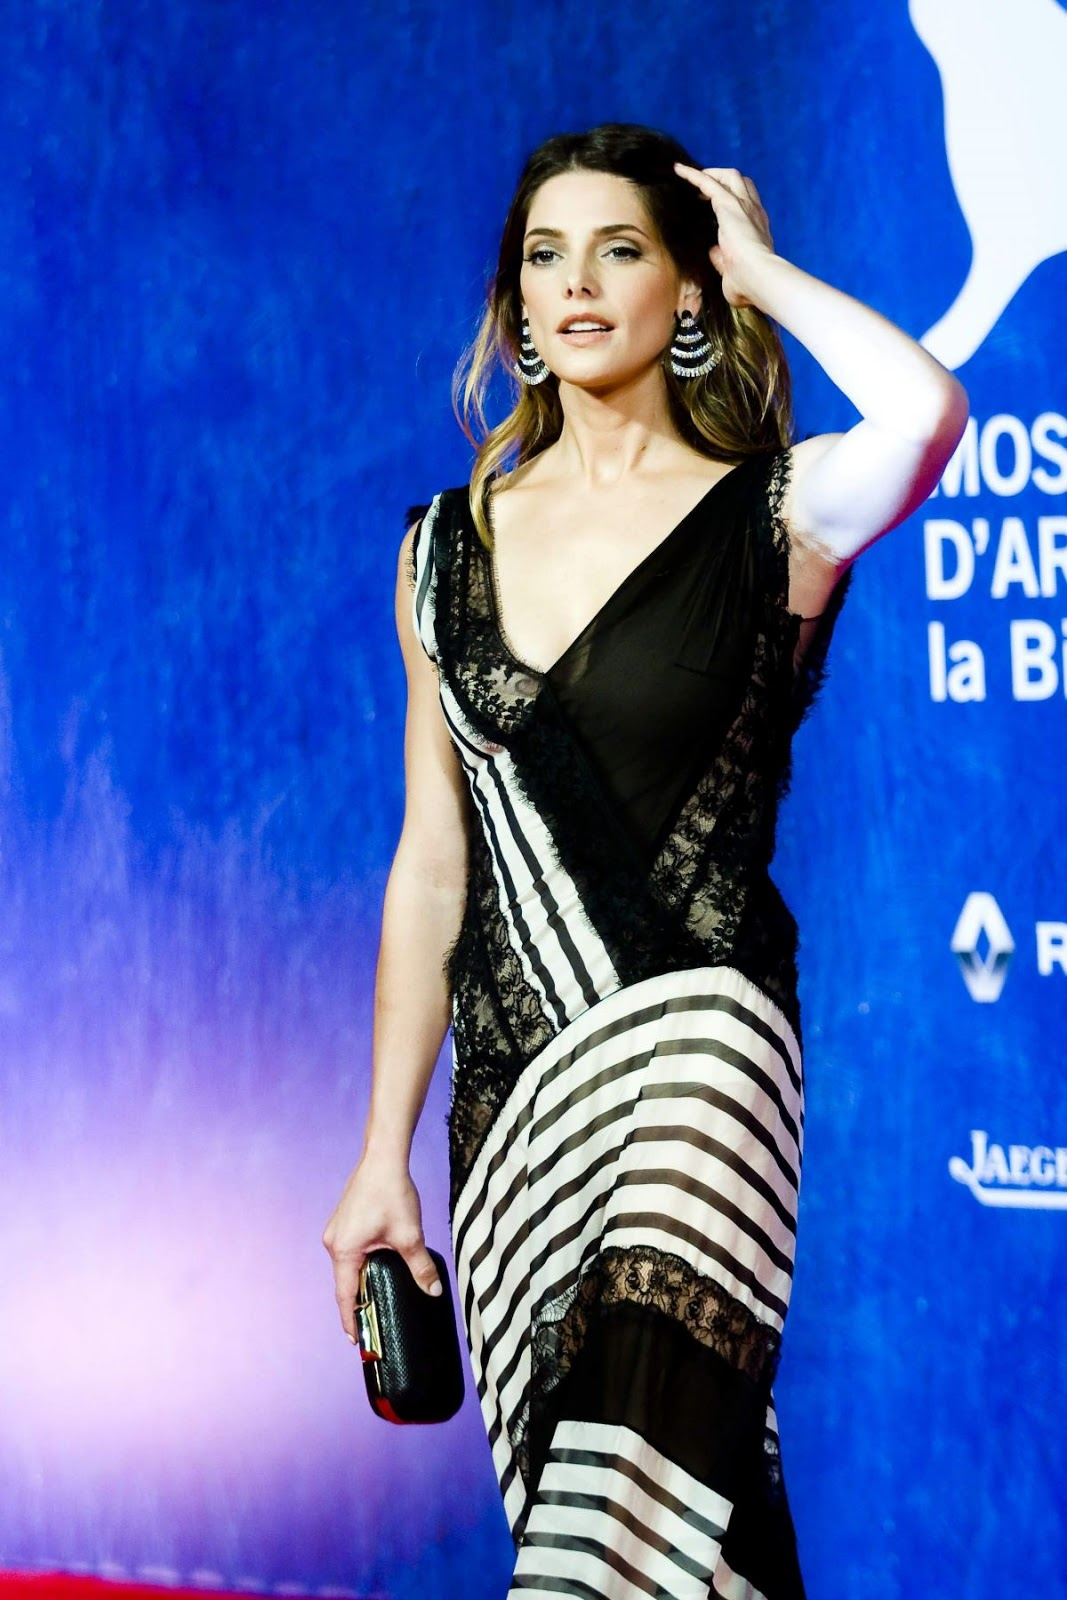 Full HQ Photos of Ashley Greene At In Dubious Battle Premiere At 2016 Venice Film Festival